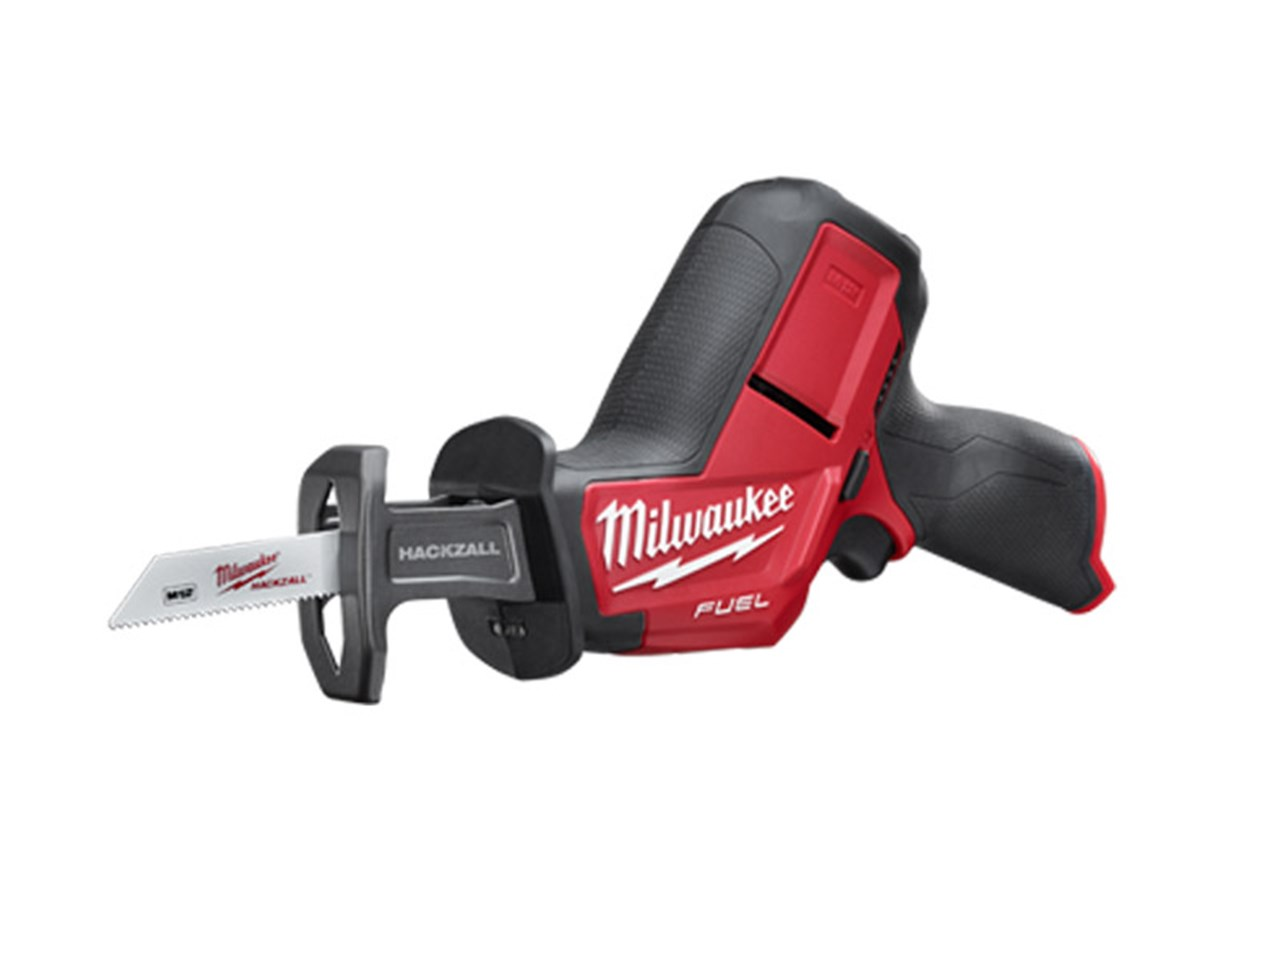 Milwaukee M12CHZ 12V Fuel Sub Compact Hackzall (Reciprocating Saw) - Body Only